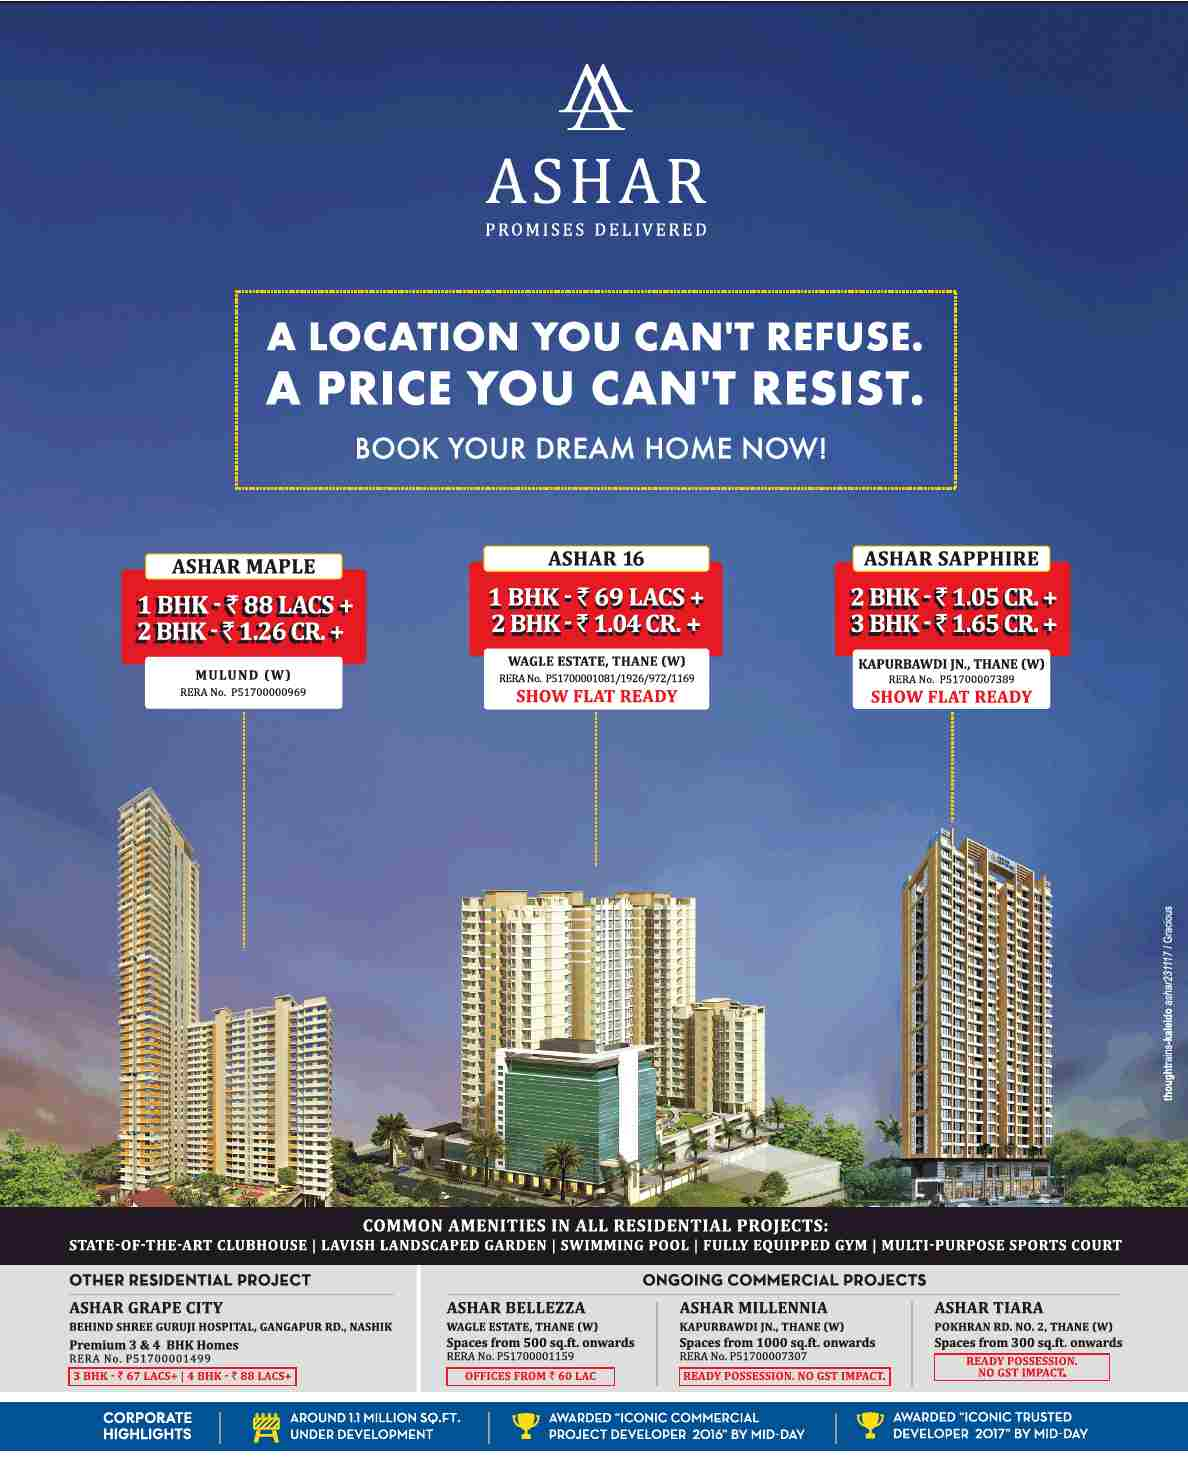 Invest in Ashar Properties in location you can t refuse price you can t resist in Mumbai